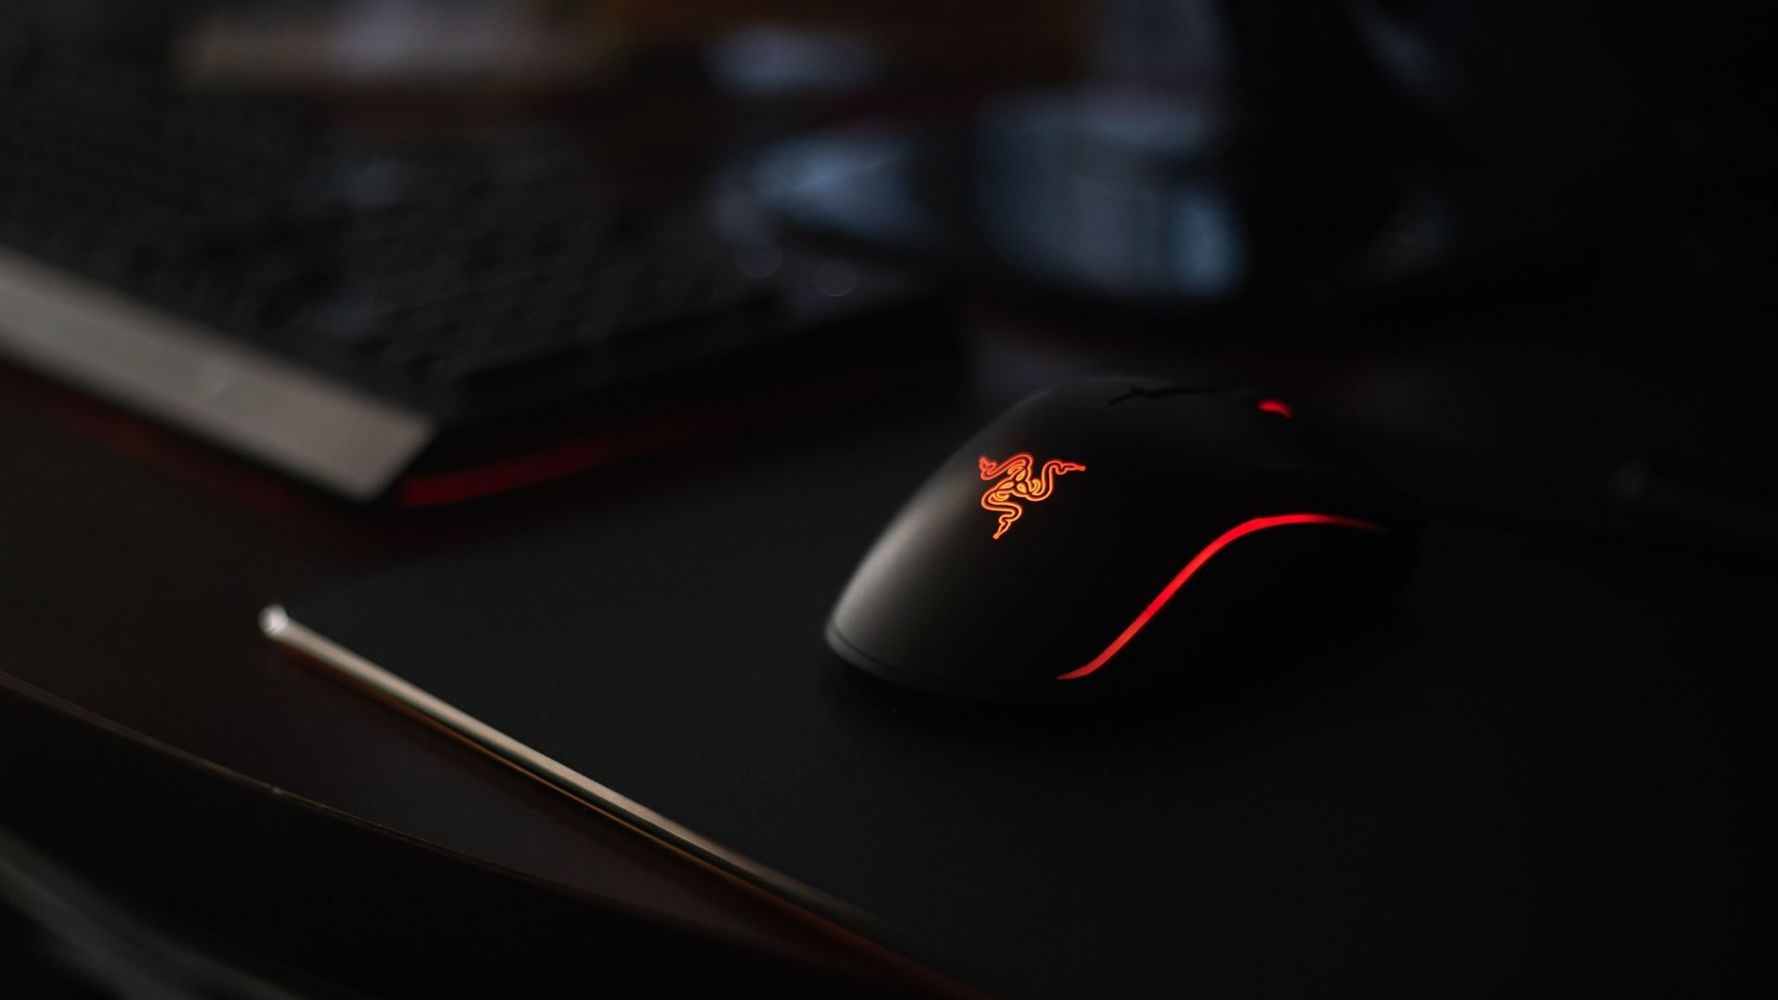 One of the best mouse for rainbow six siege - the Razer DeathAdder, placed on a mousepad.